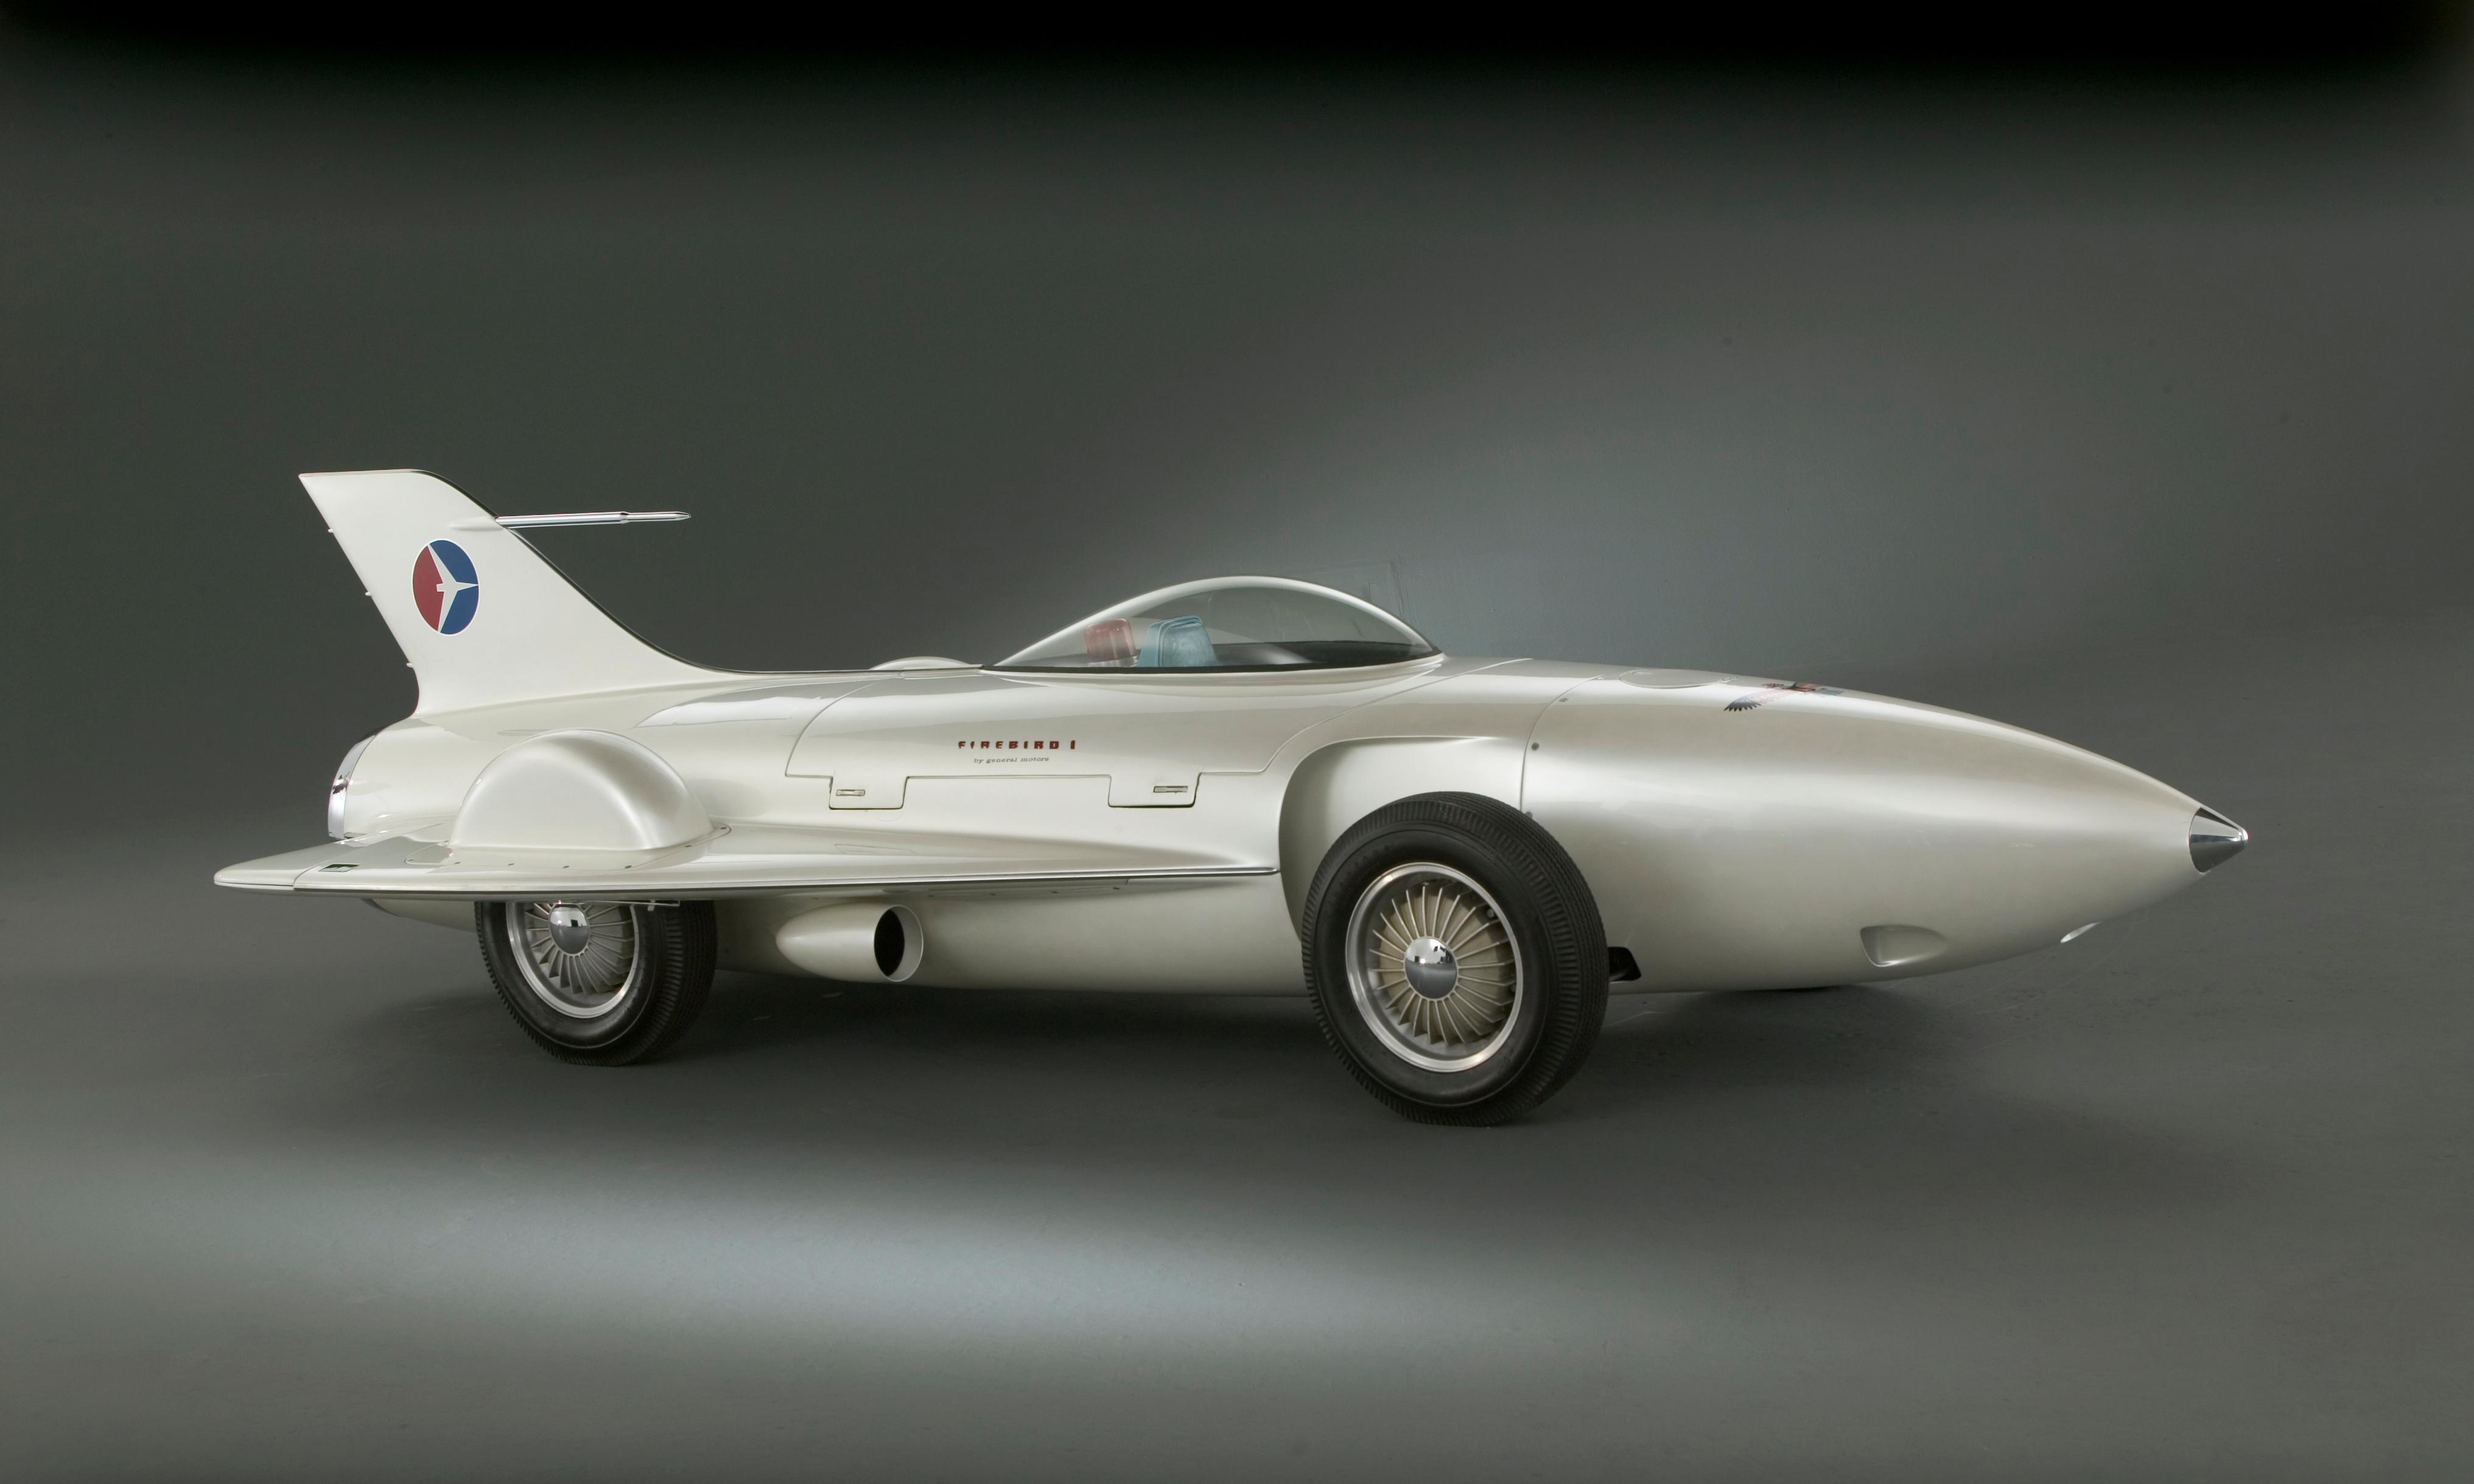 V&A car exhibition to mark 'most important 20th century object'